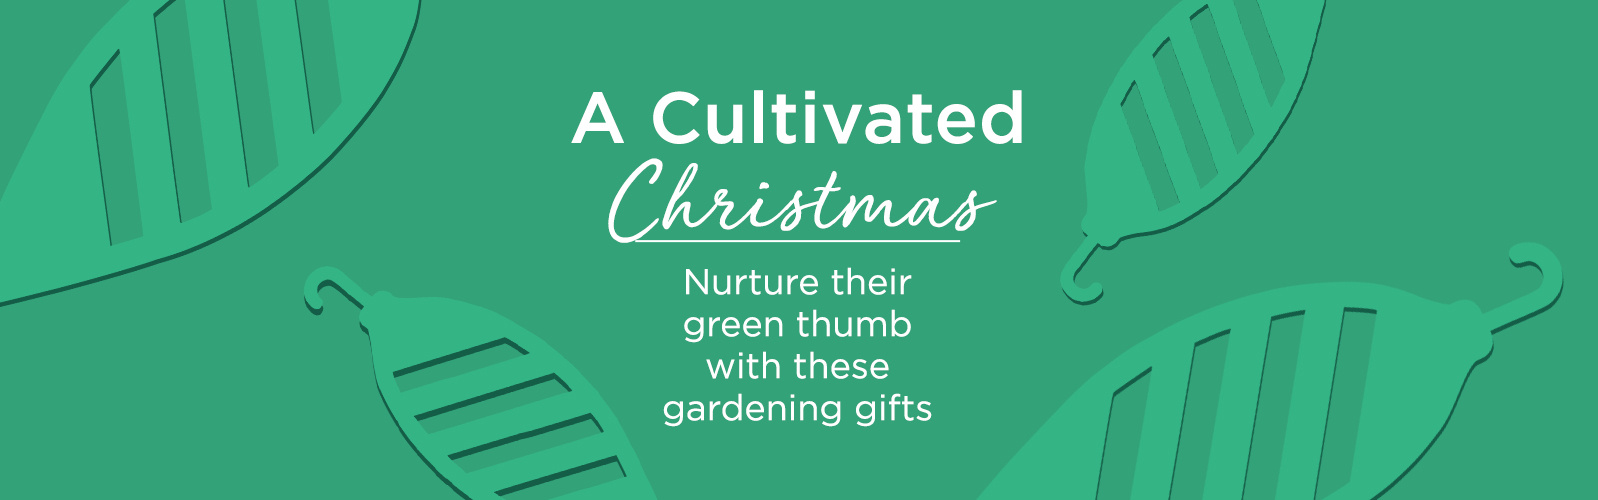 A Cultivated Christmas.  Nurture their green thumb with these gardening gifts